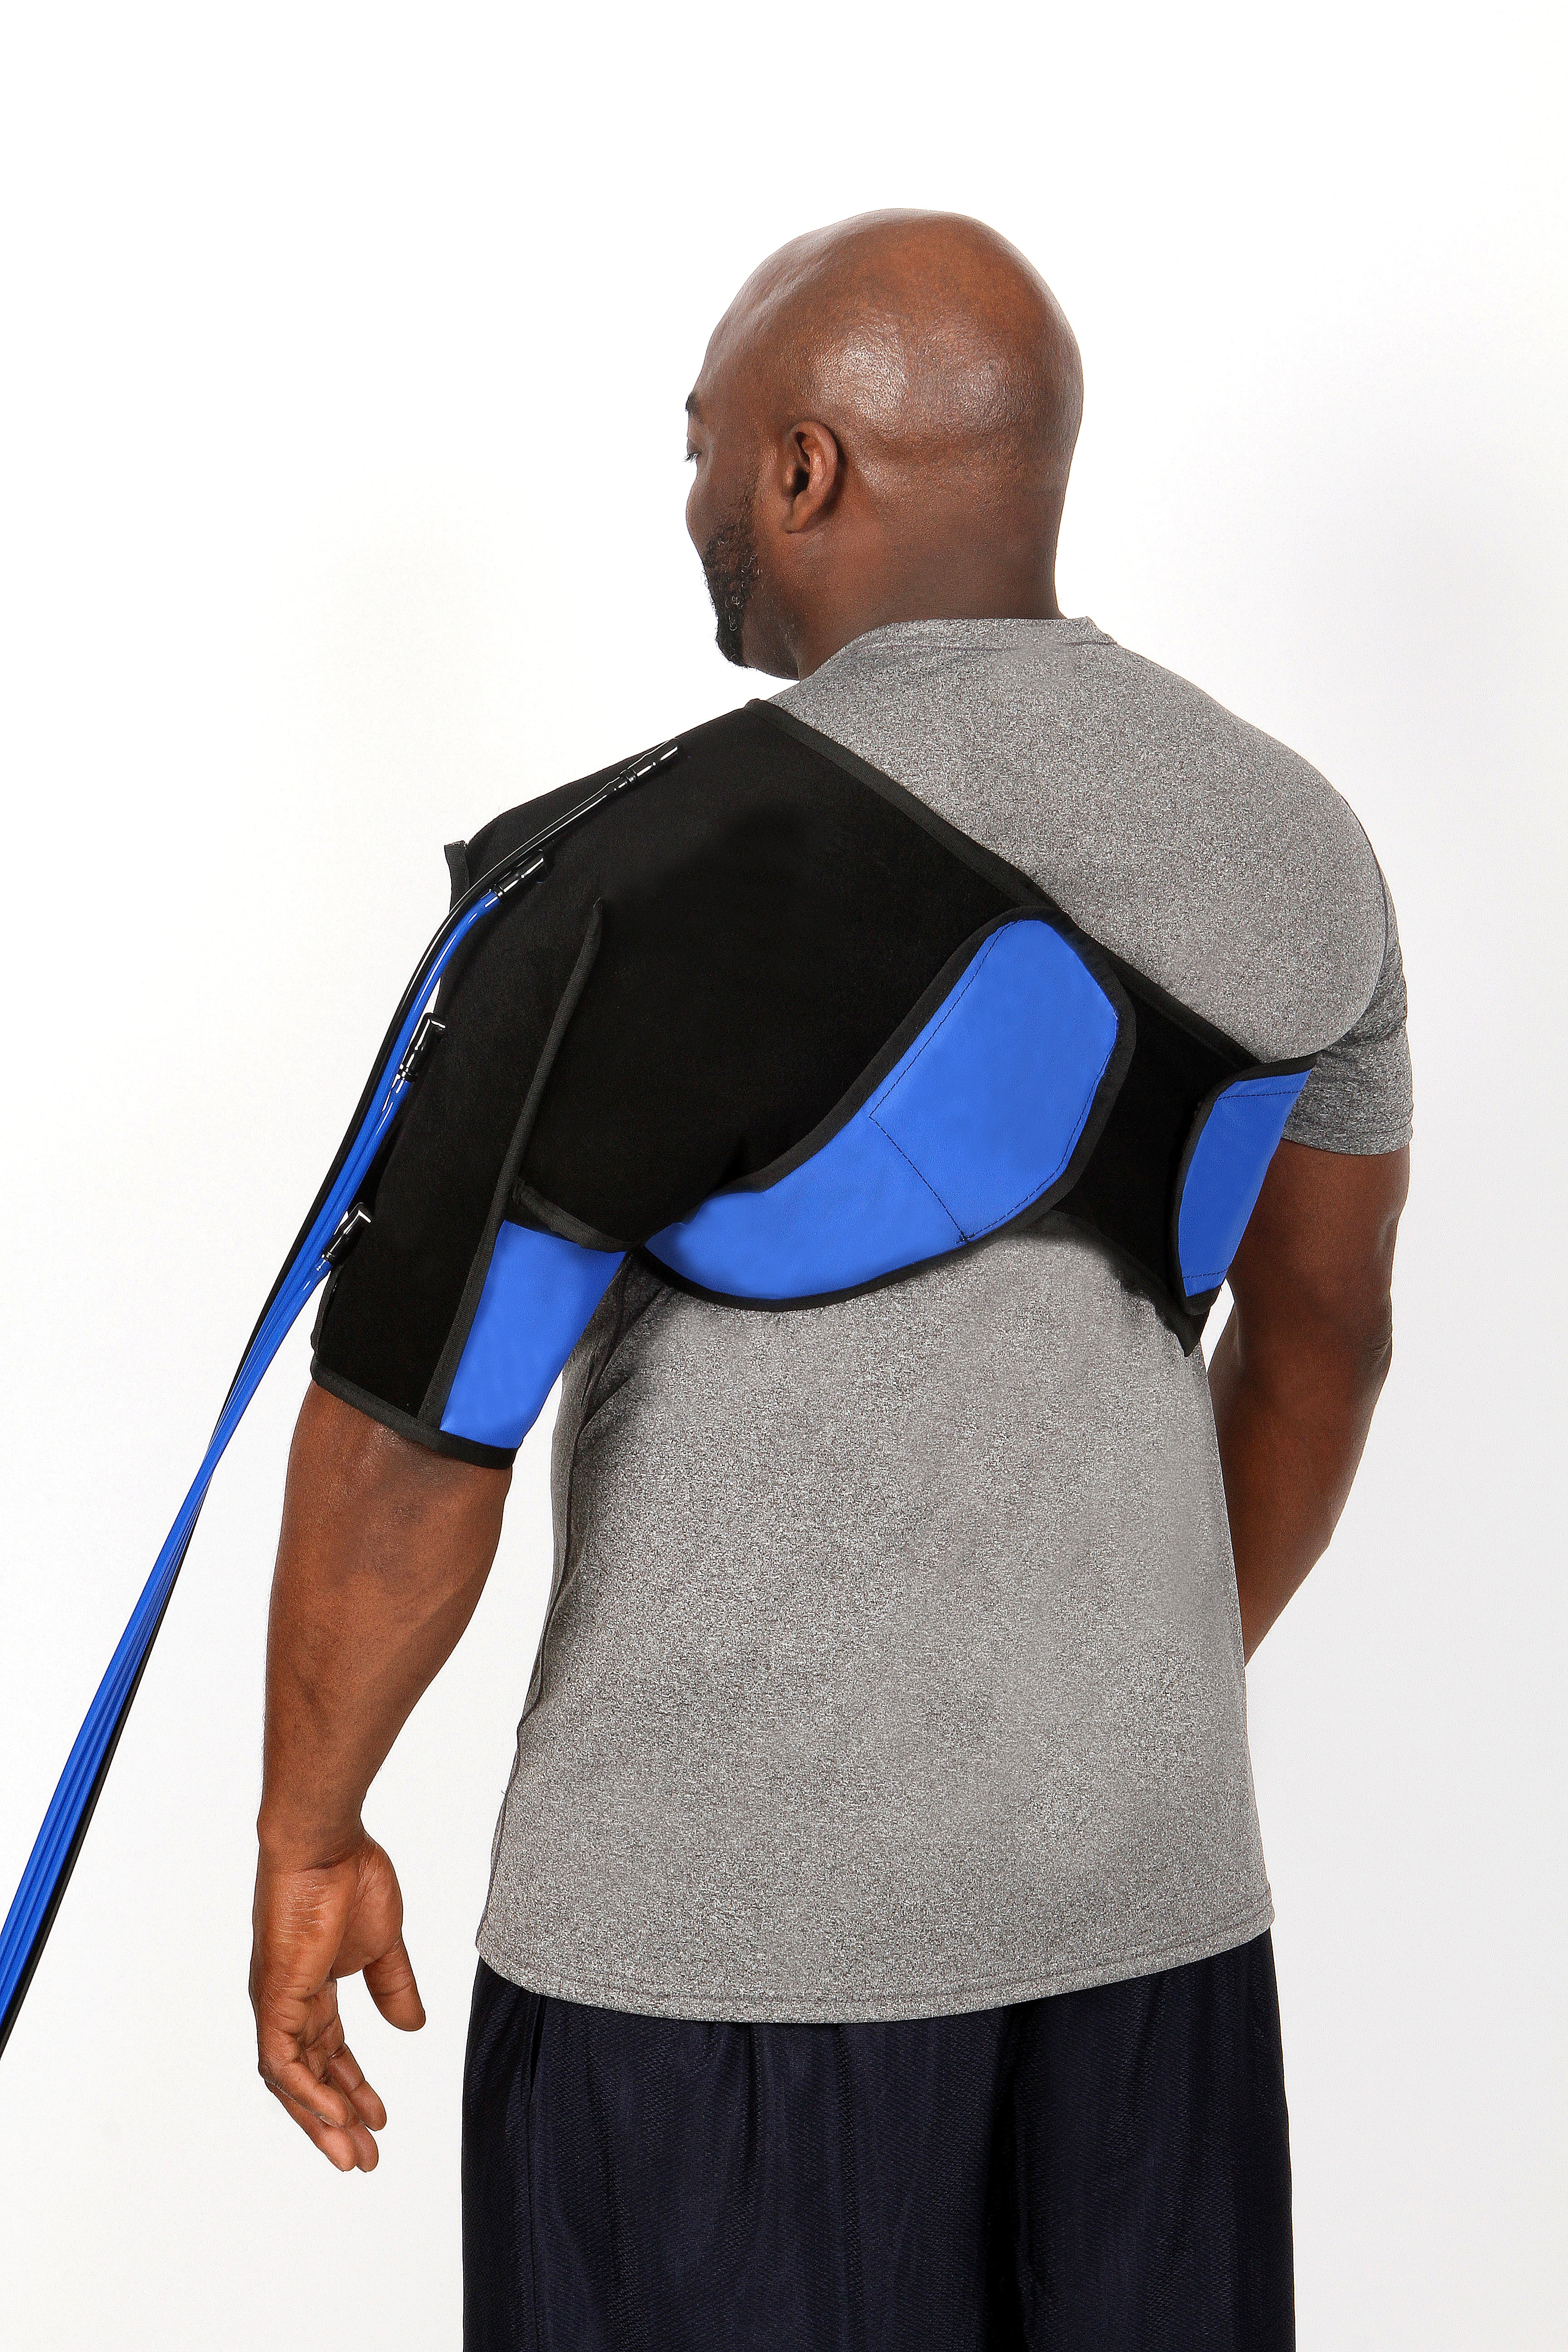 BIOCRYO COLD COMPRESSION THERAPY SYSTEM - Chiropractic Supplies